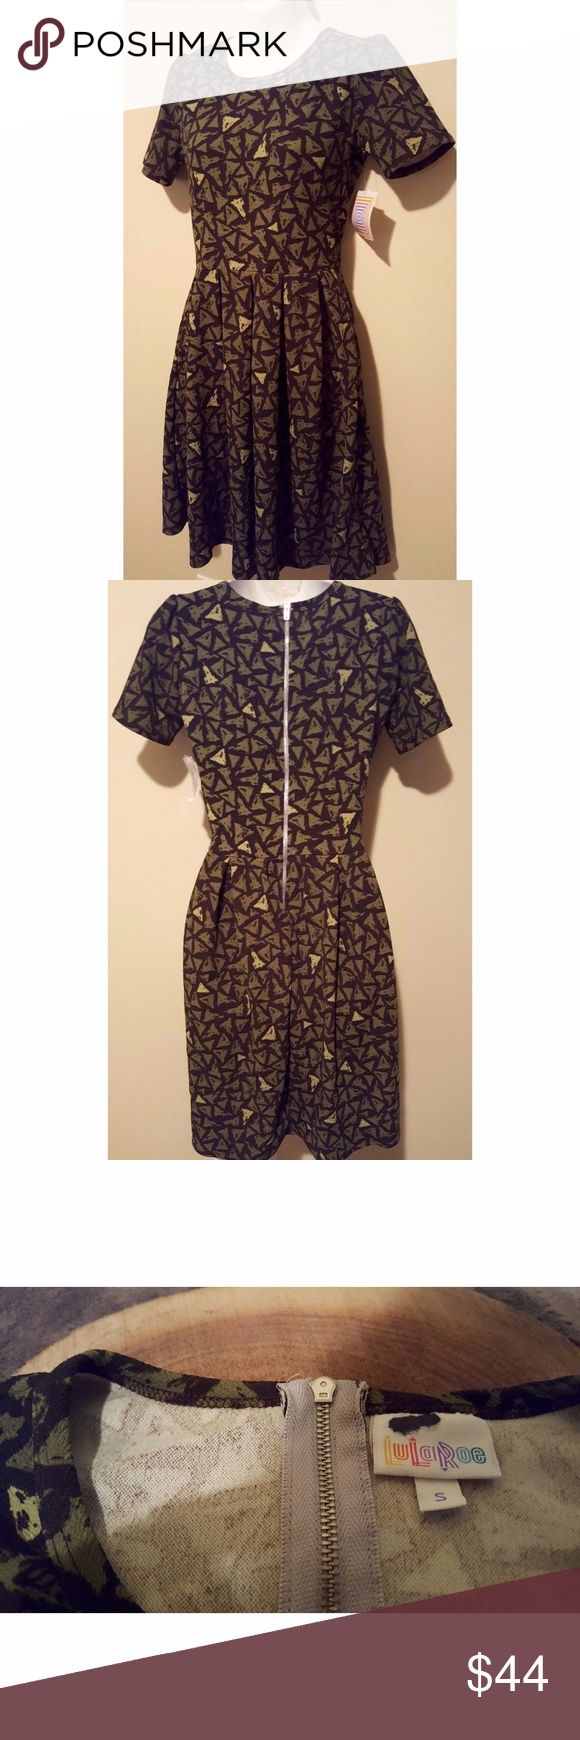 Lularoe Amelia Dress Size Small Green New Brand: LulaRose Size: small Material: polyester blend Flaws:  No rips, stains or holes. new Color:  green, black  Armpit to armpit - 16.5 inches Waist measured flat across - 13.5 inches Length of dress - 37 inches LuLaRoe Dresses